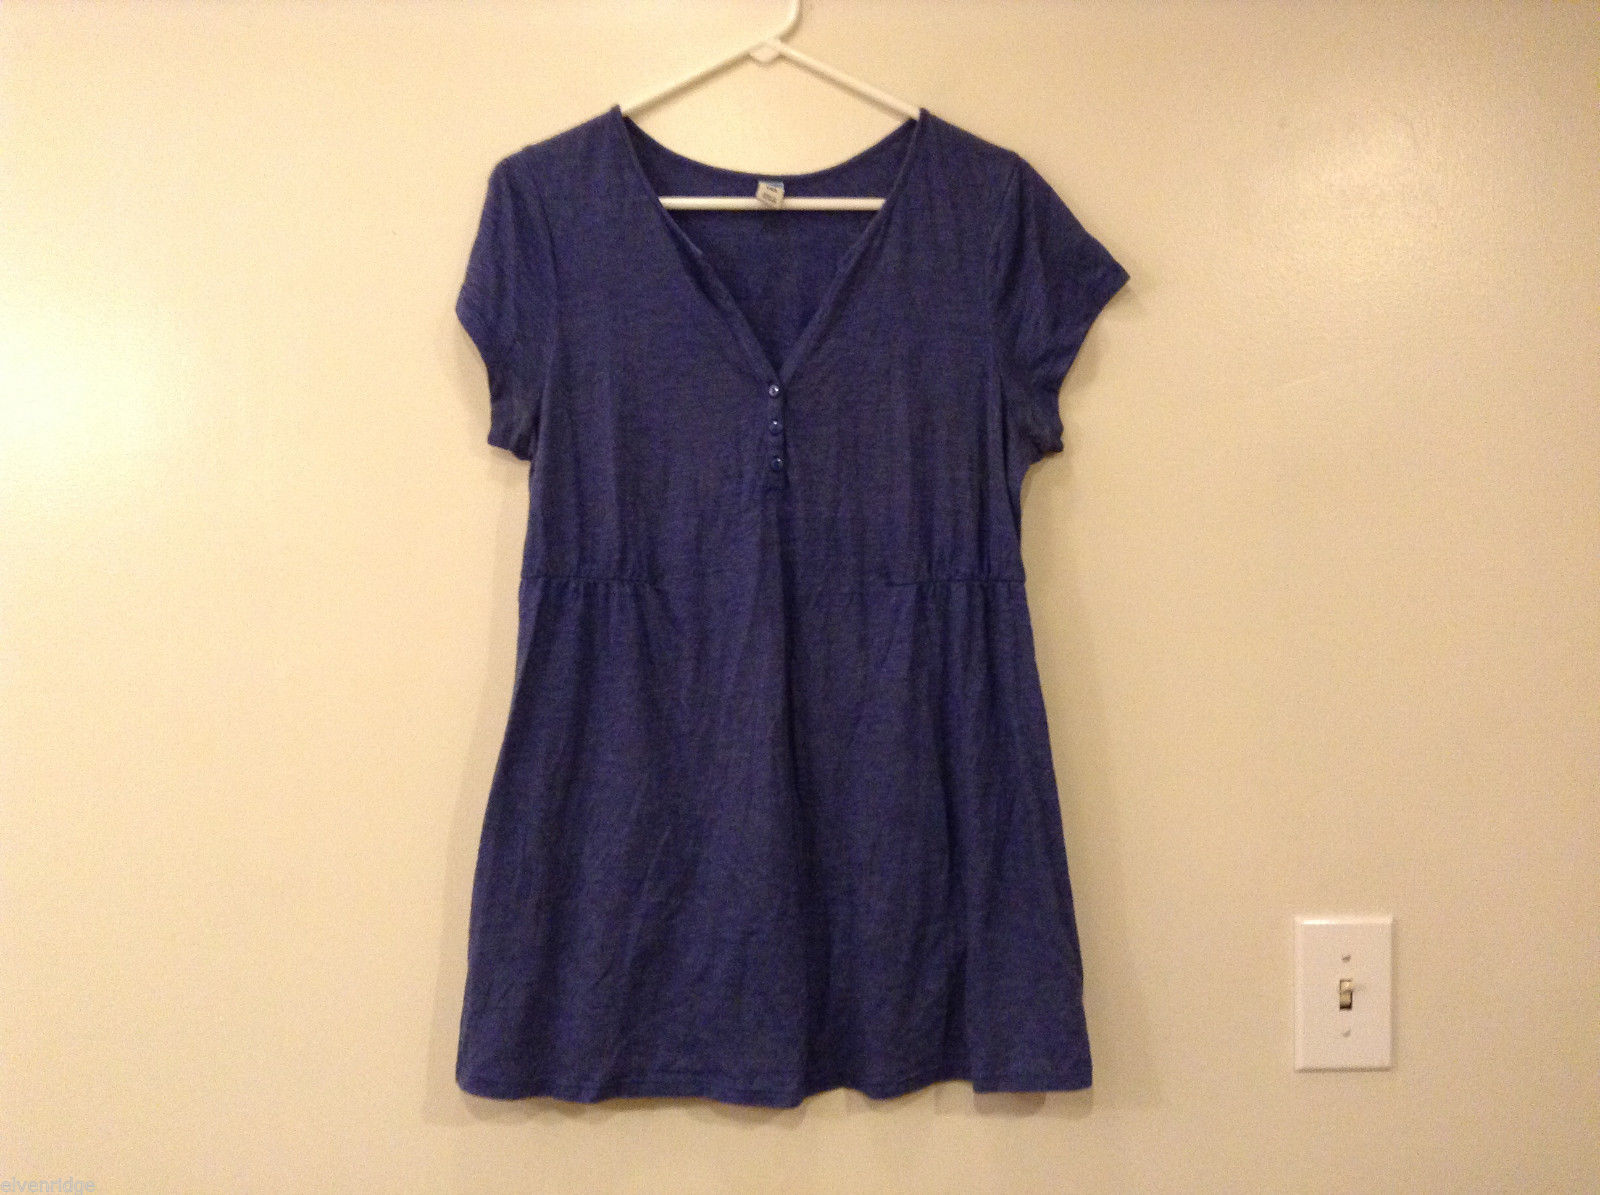 Old Navy Women Maternity Size L Blouse Top T-Shirt Tee Blue V-Neck Short Sleeves